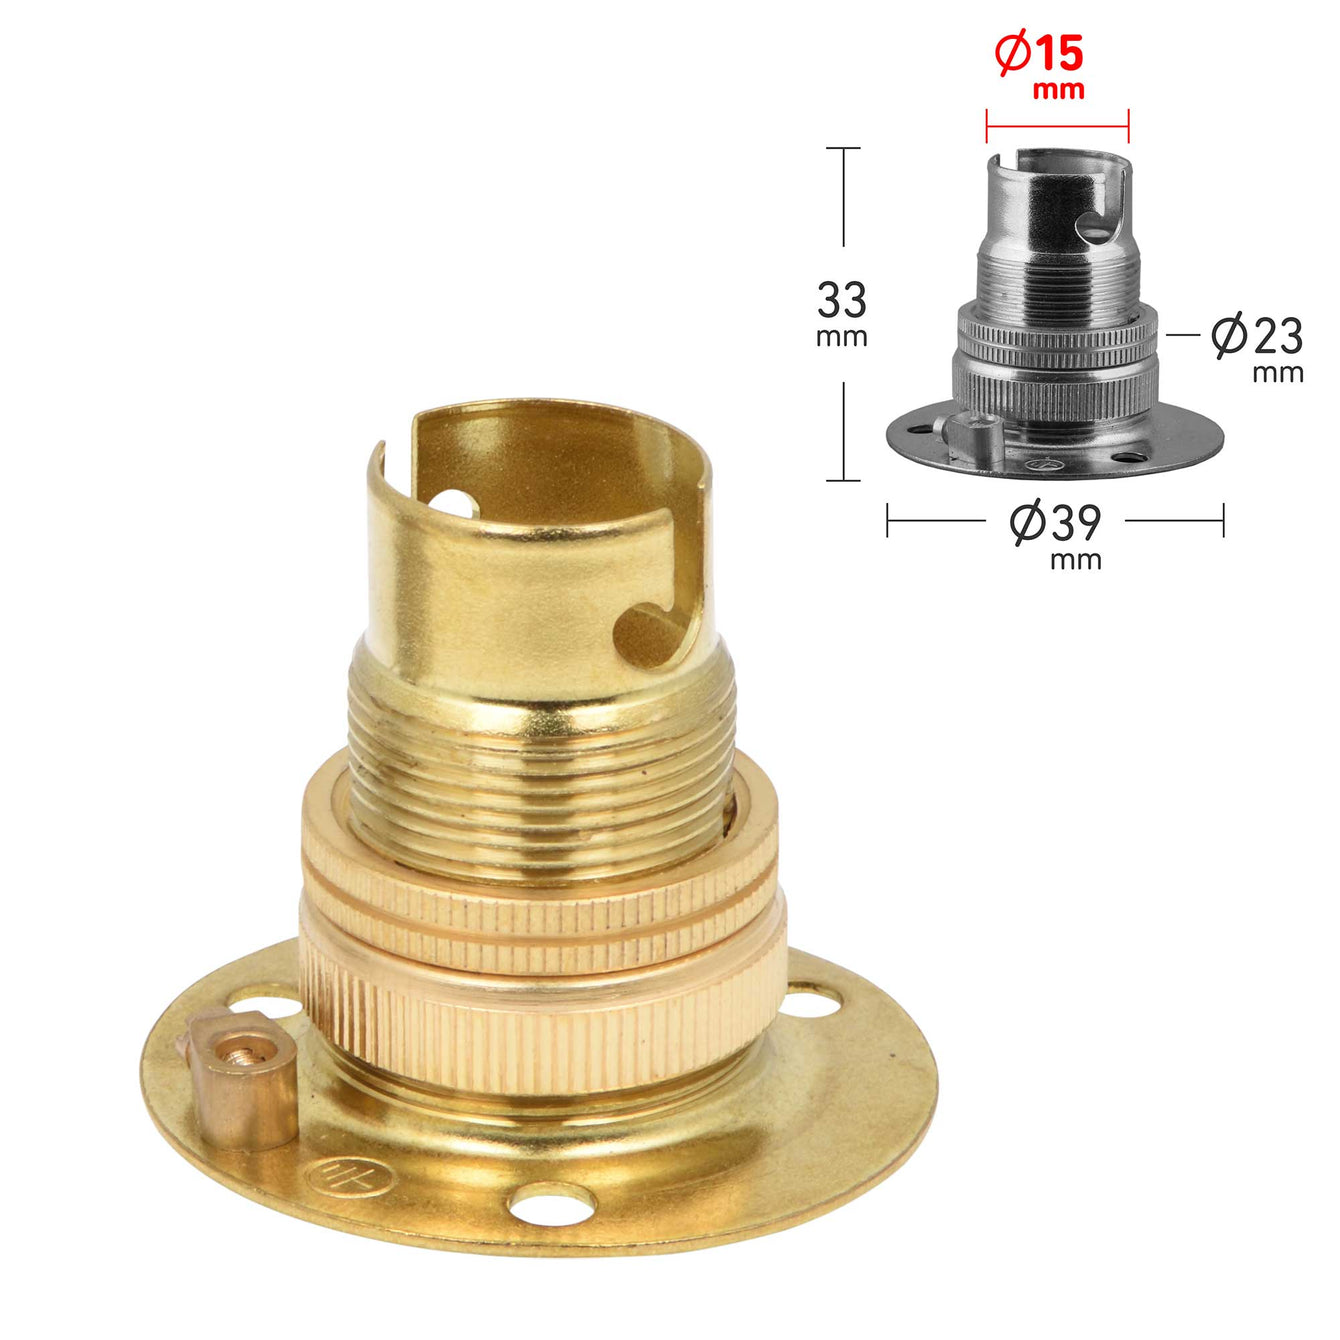 ElekTek Lamp Holder Fixed Batten Miniature Small Bayonet Cap SBC B15 With Shade Ring Solid Brass - Buy It Better Antique Brass